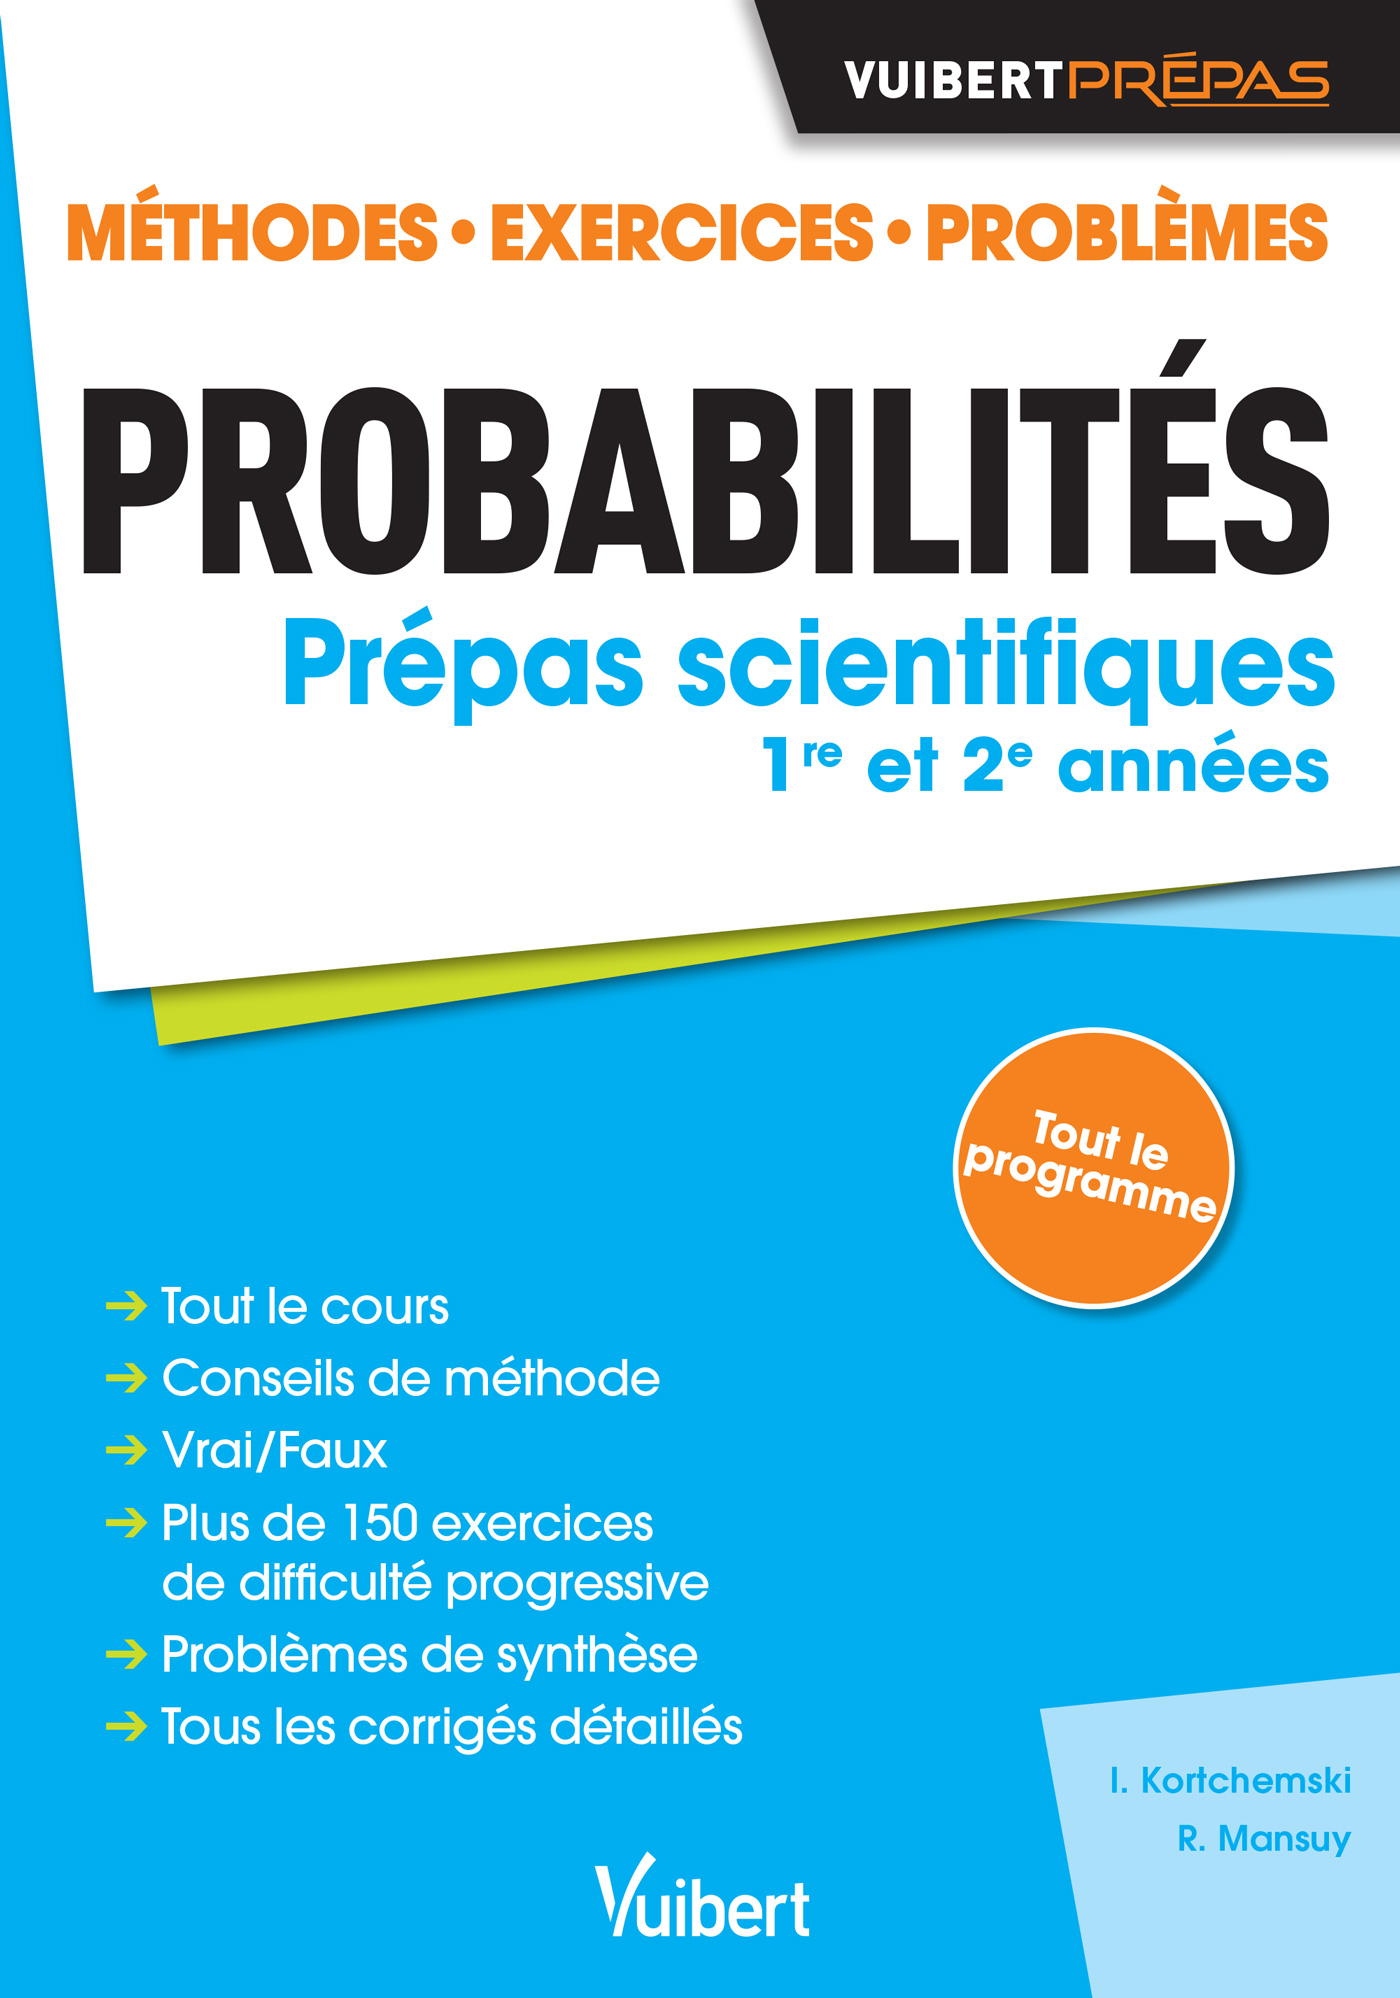 Probabilites Classes Preparatoires Scientifiques Vuibert